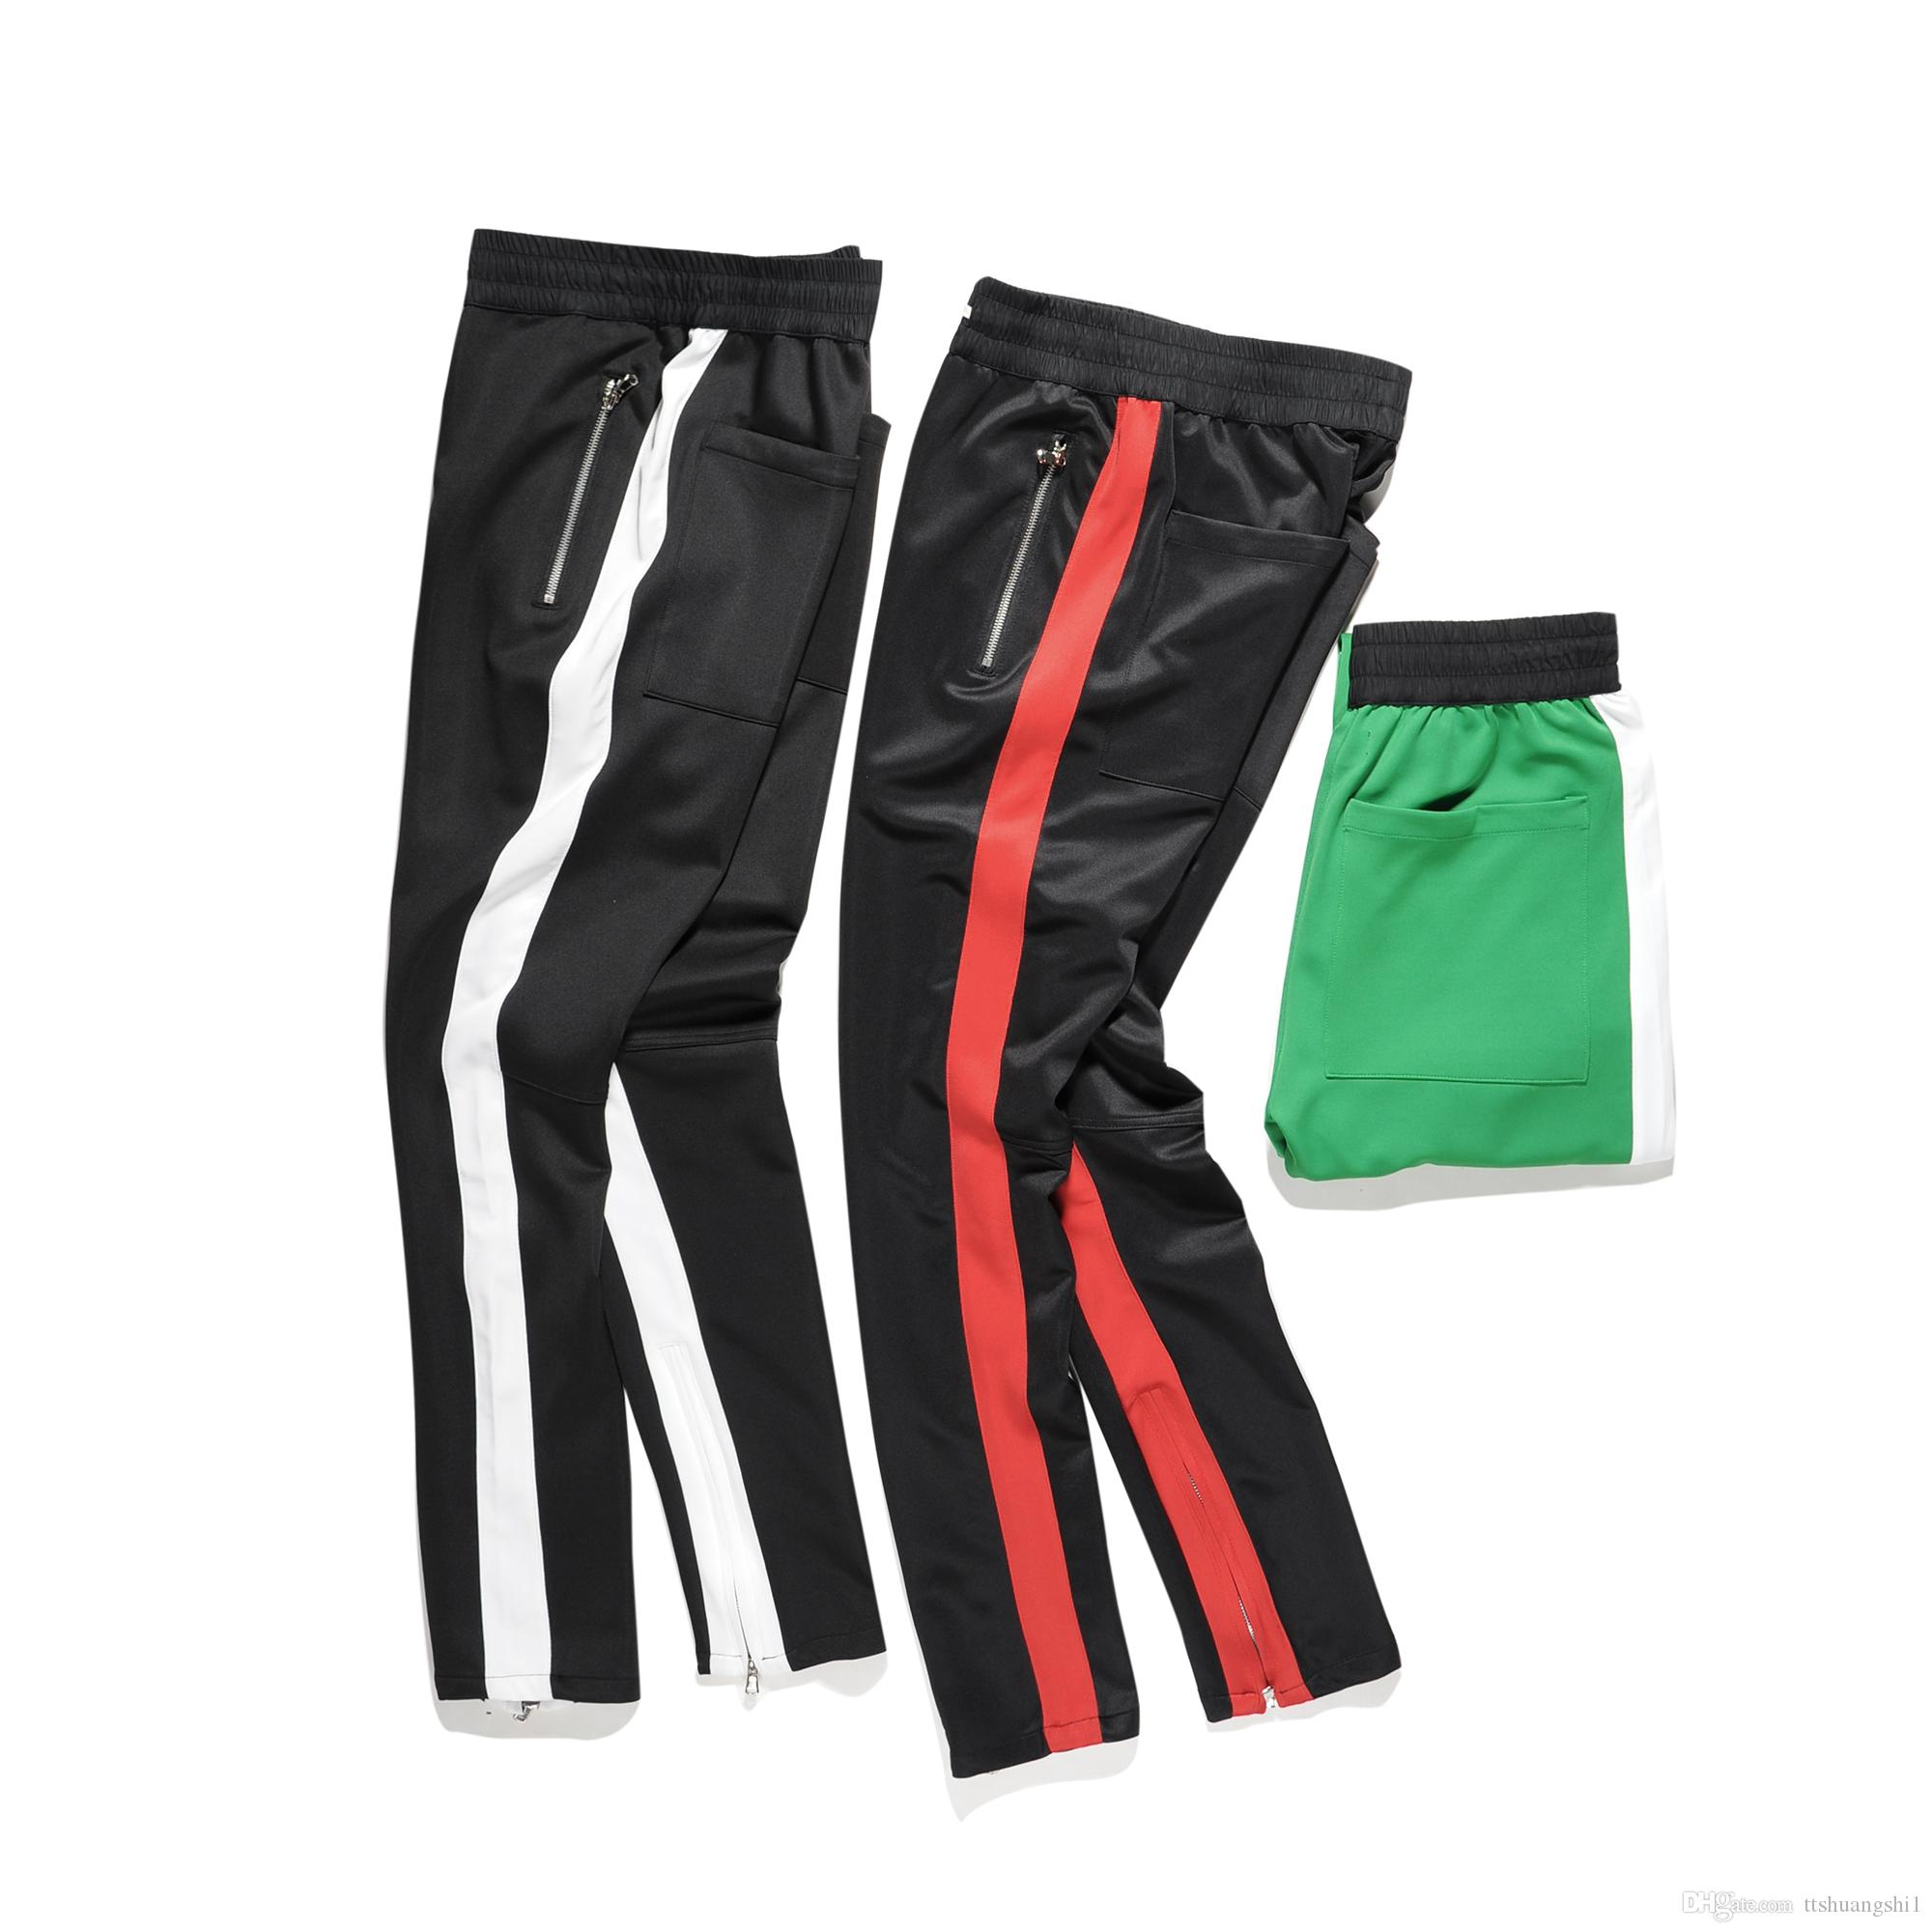 5d4df3e576a43c 2019 2018 Black Red Green Colour FOG FEAR OF GOD Justin Bieber Style  Sweatpants Men Hiphop Slim Fit Double Striped Track Pants Leg Zip Joggers  From ...